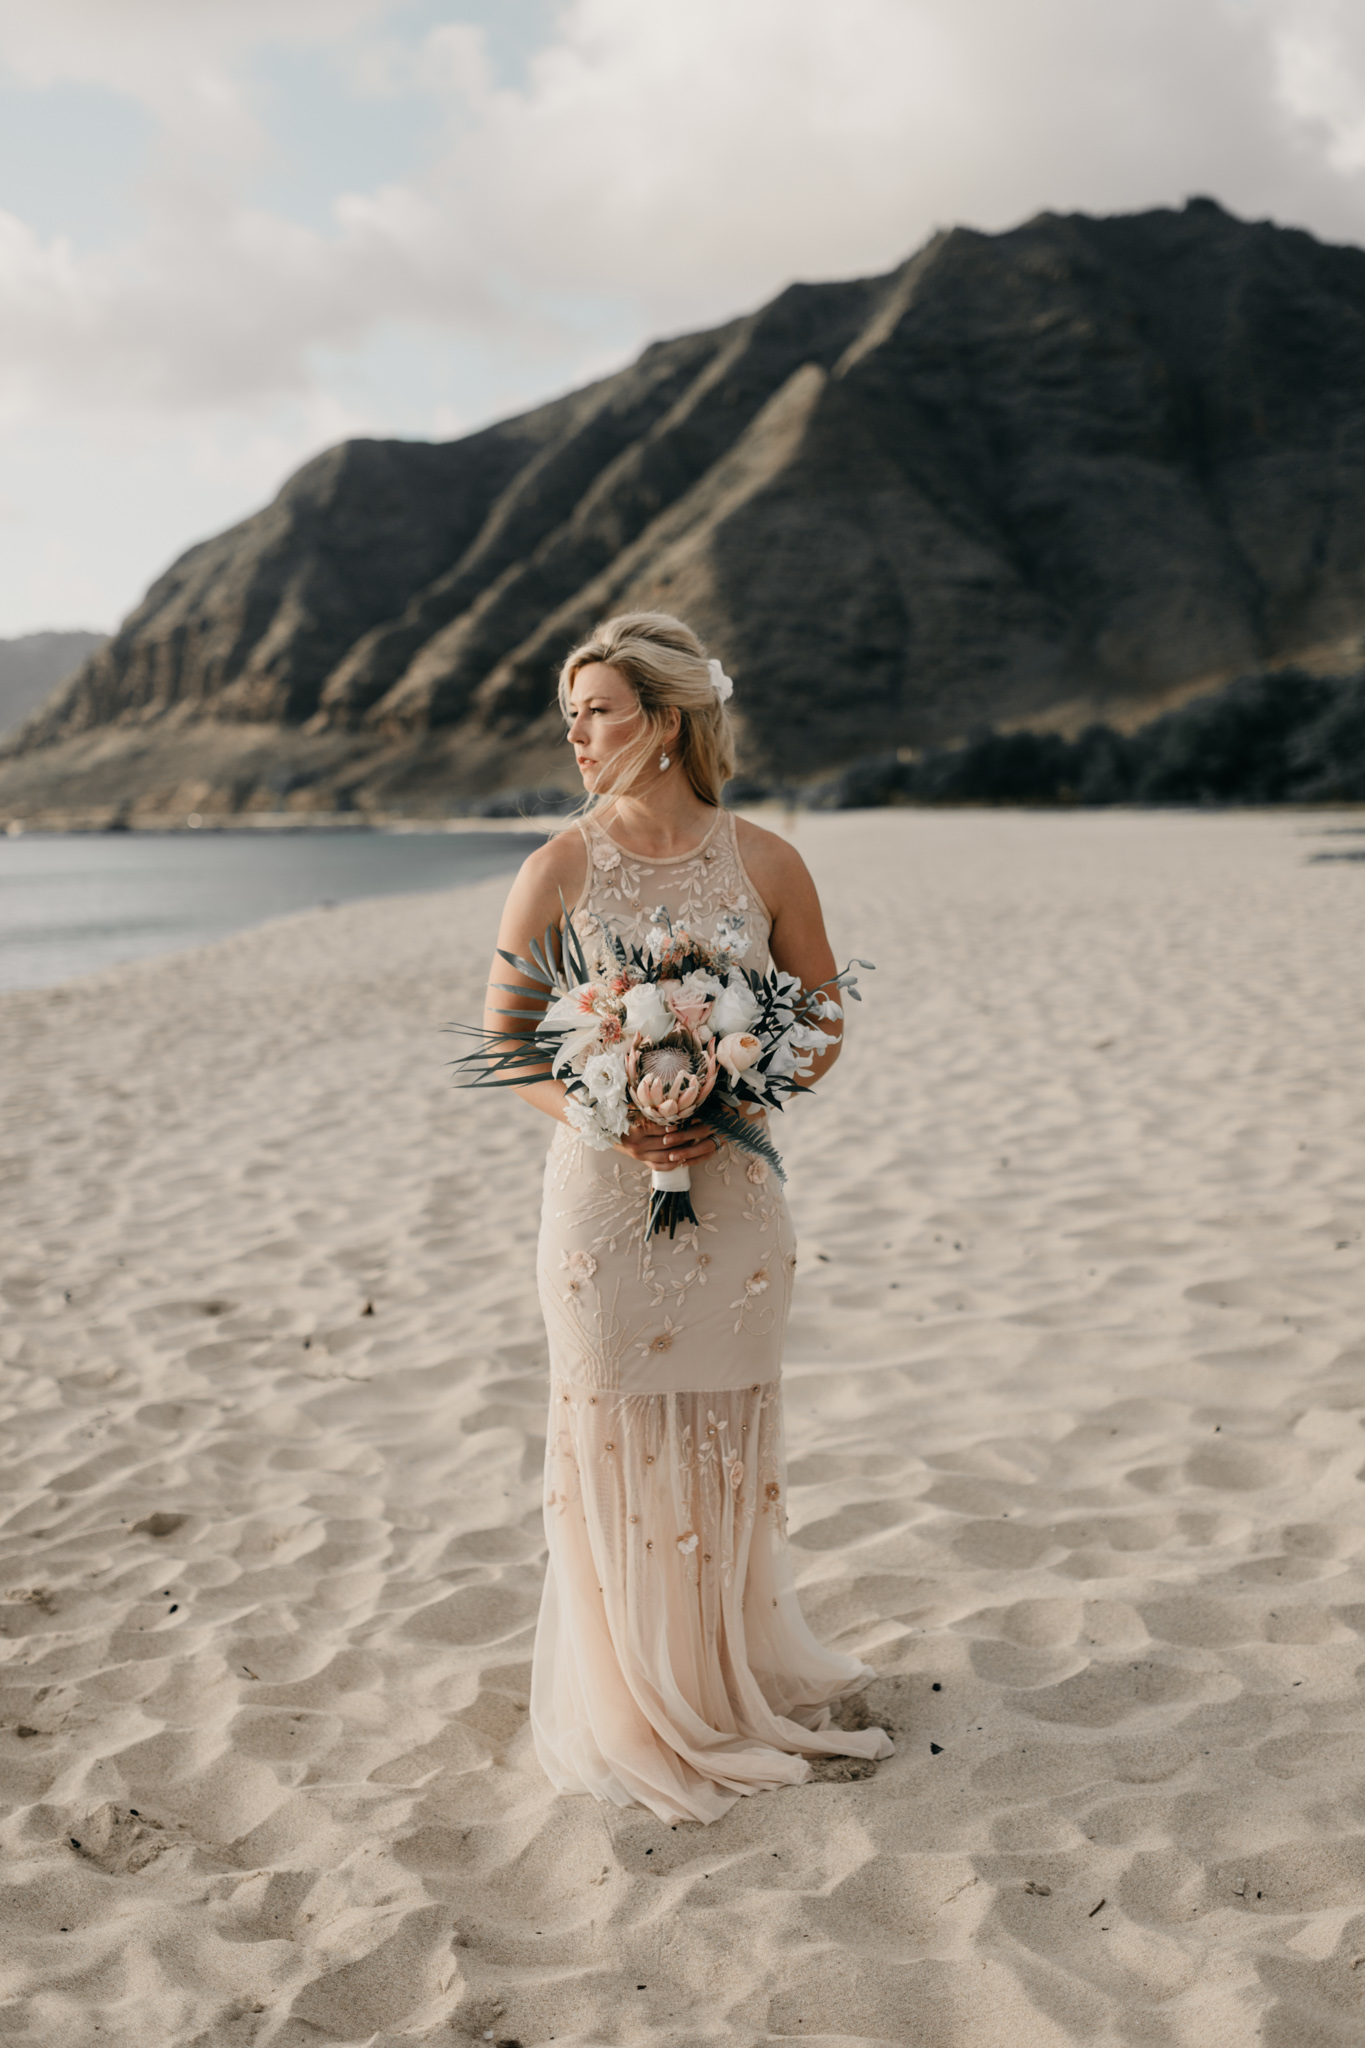 Romantic Sunset Beach Picnic by Hawaii Wedding Photographer Desiree Leilani